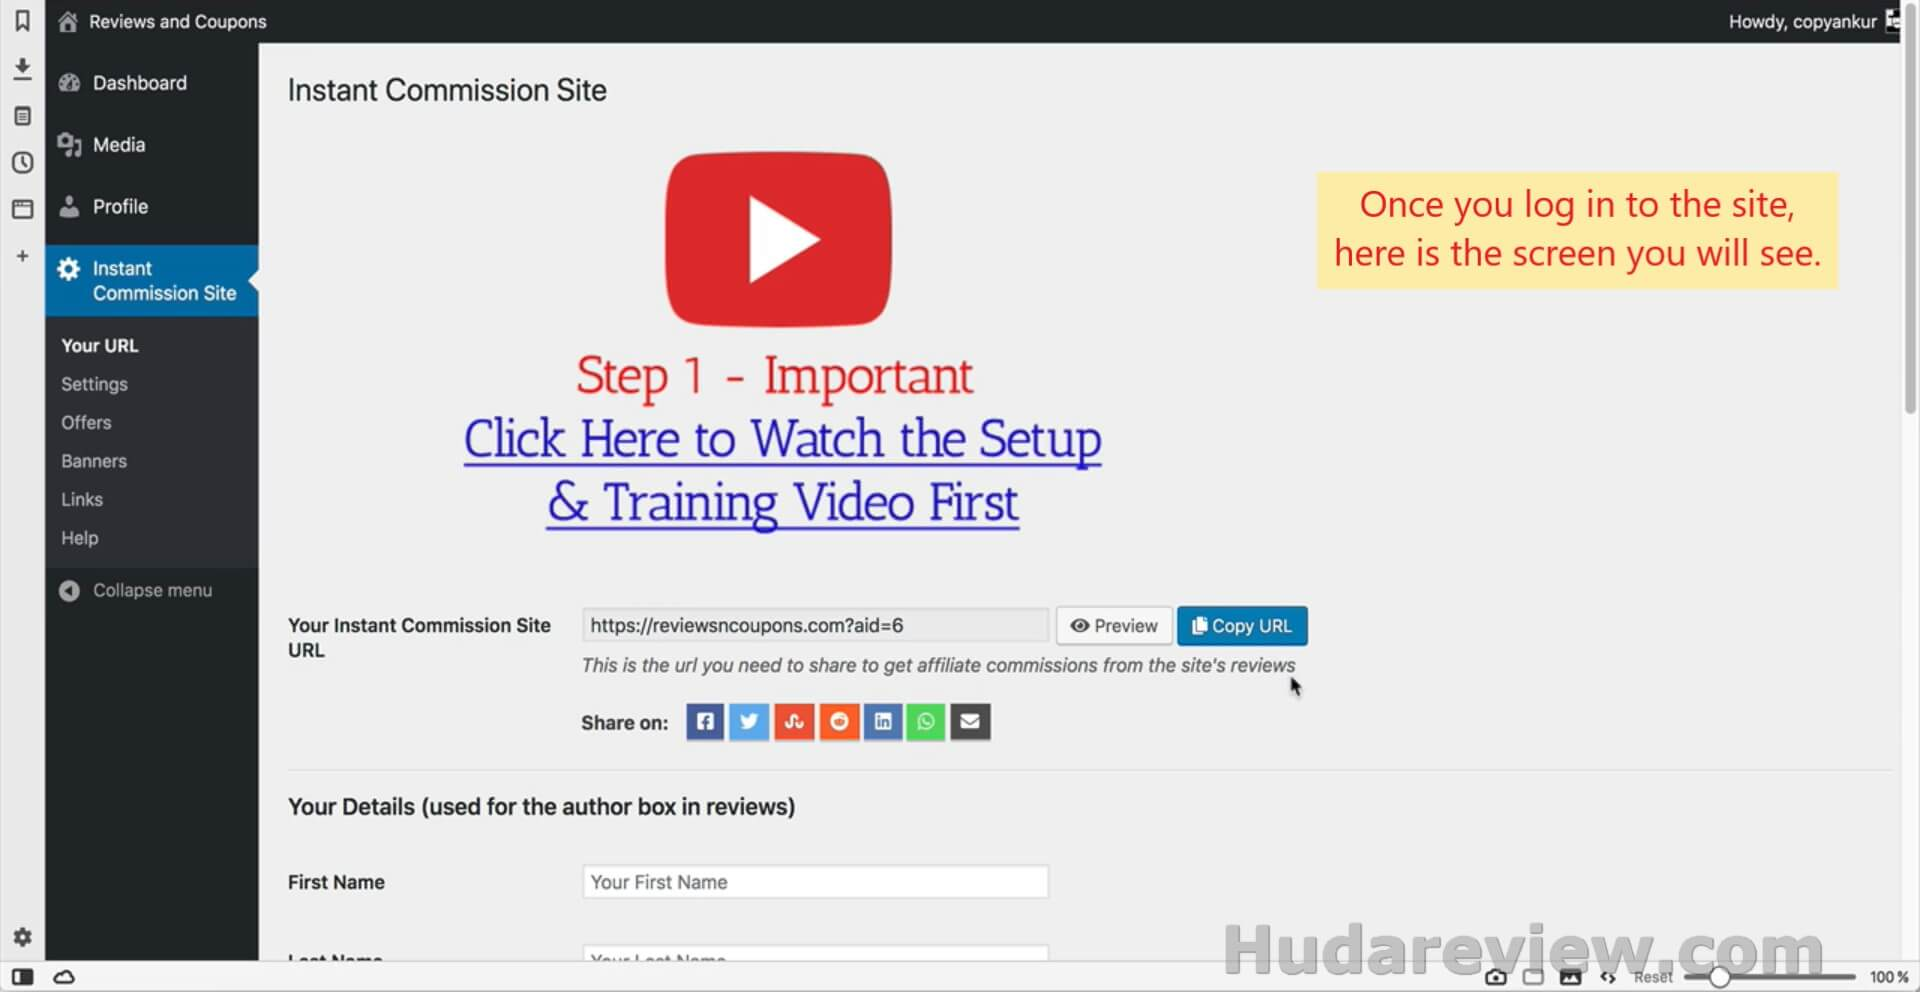 Instant-Commission-Site-Review-Step-1